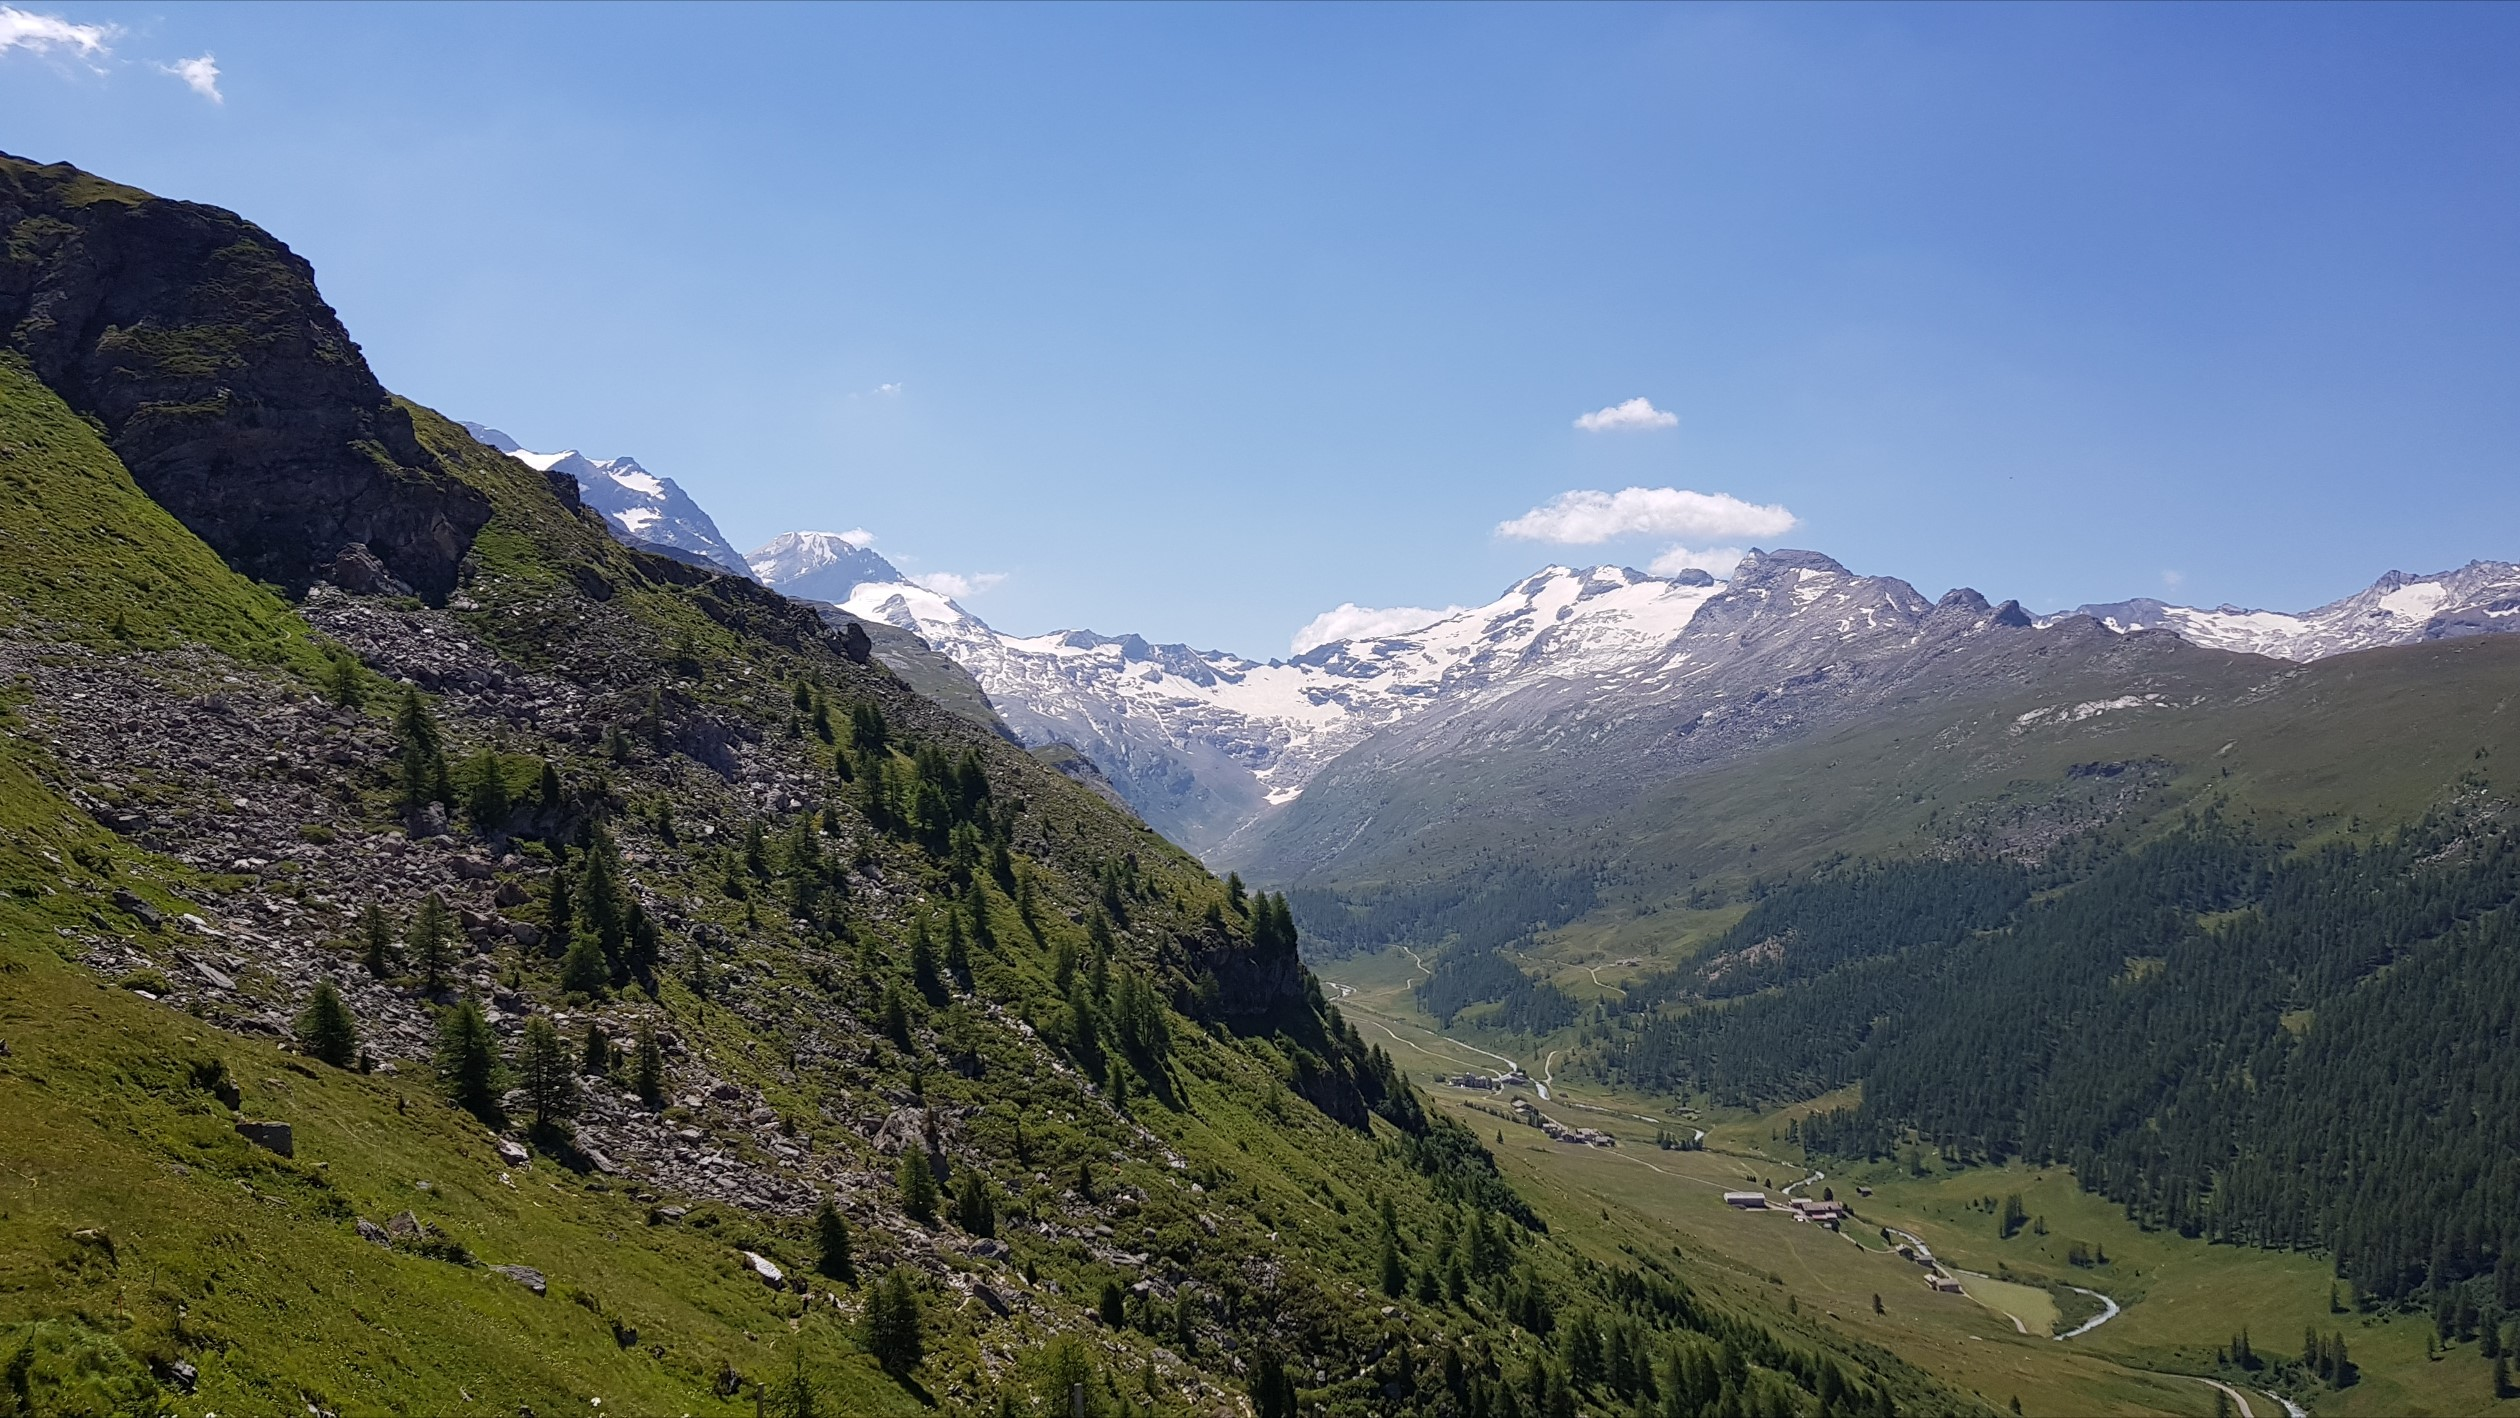 Engadine, Sils, Furtschellas, Marmore view into Val Fex